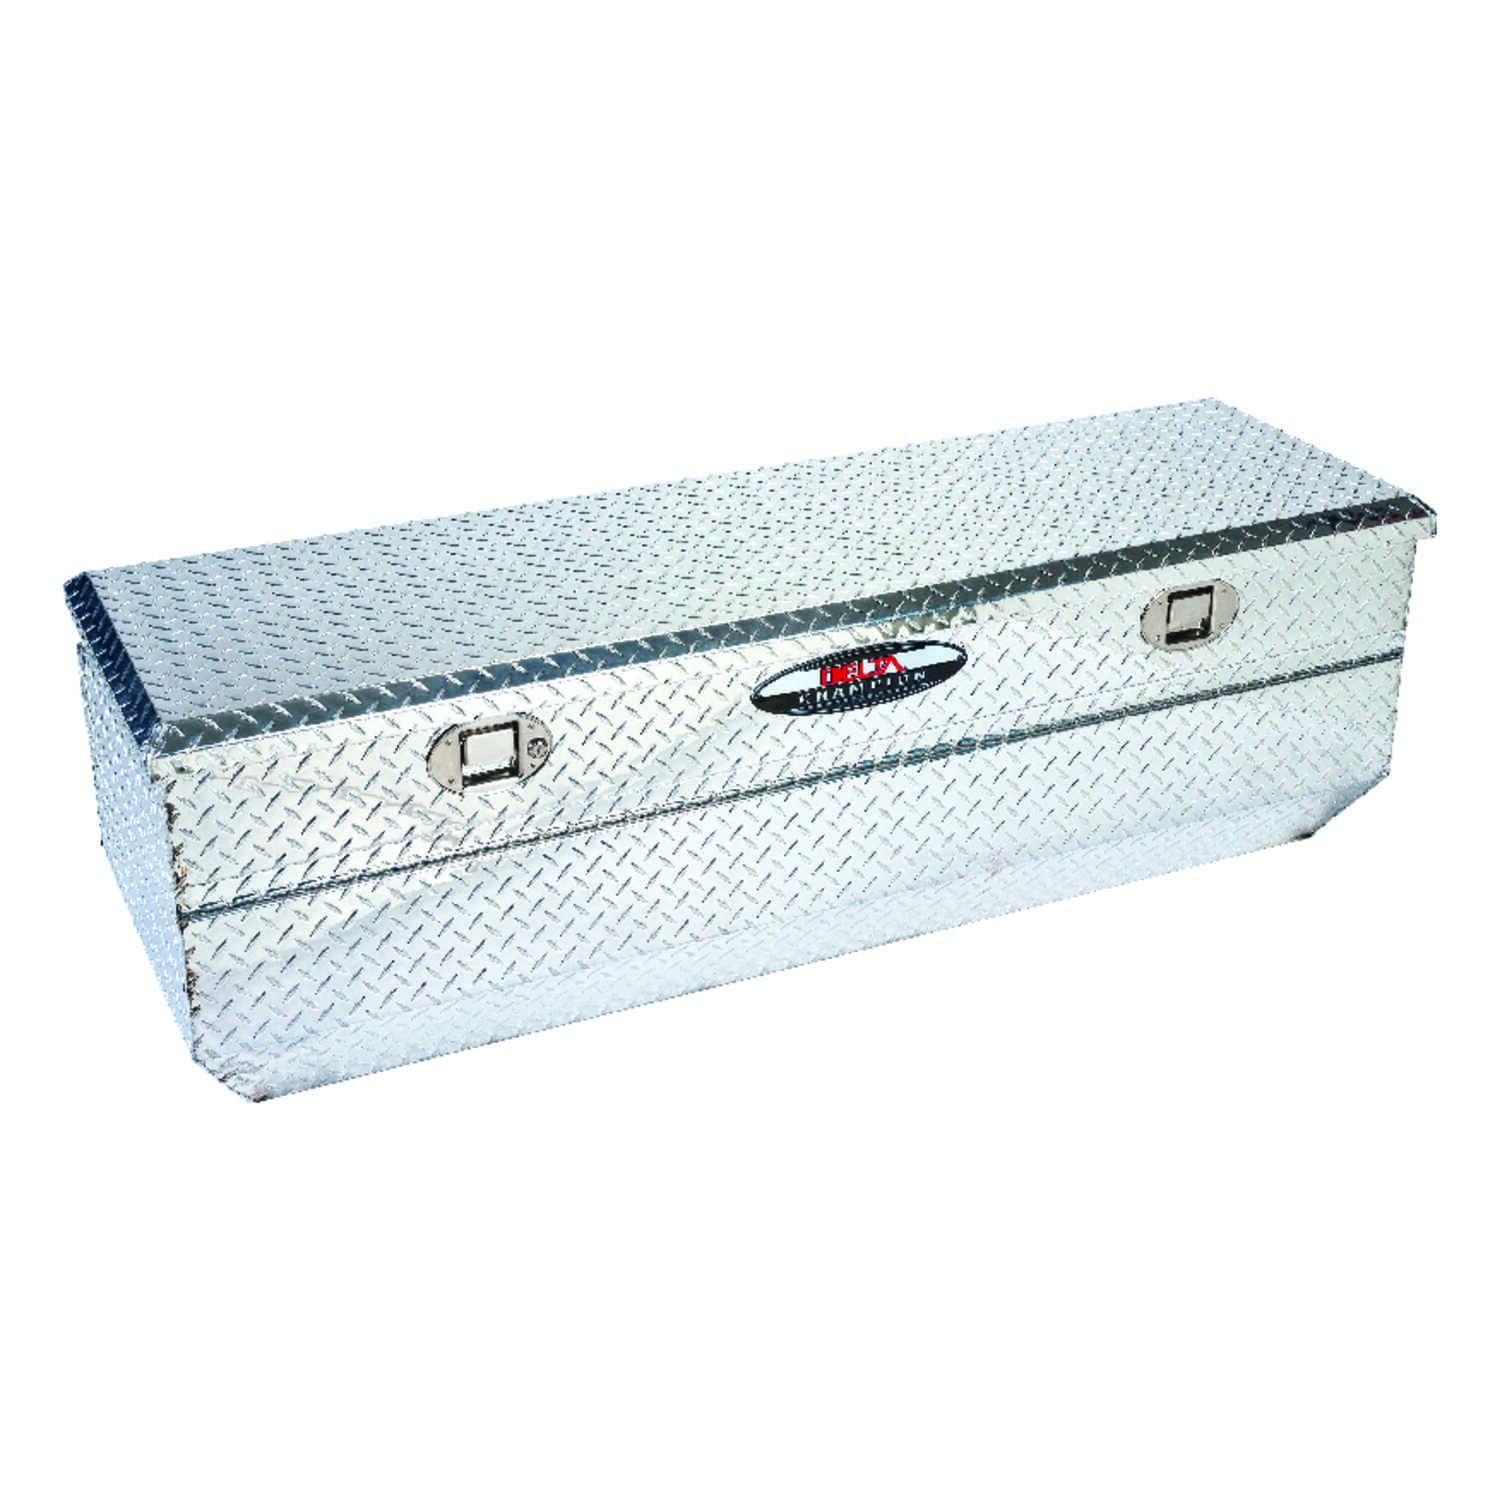 Delta  Portable Boxes  Aluminum  Truckbox